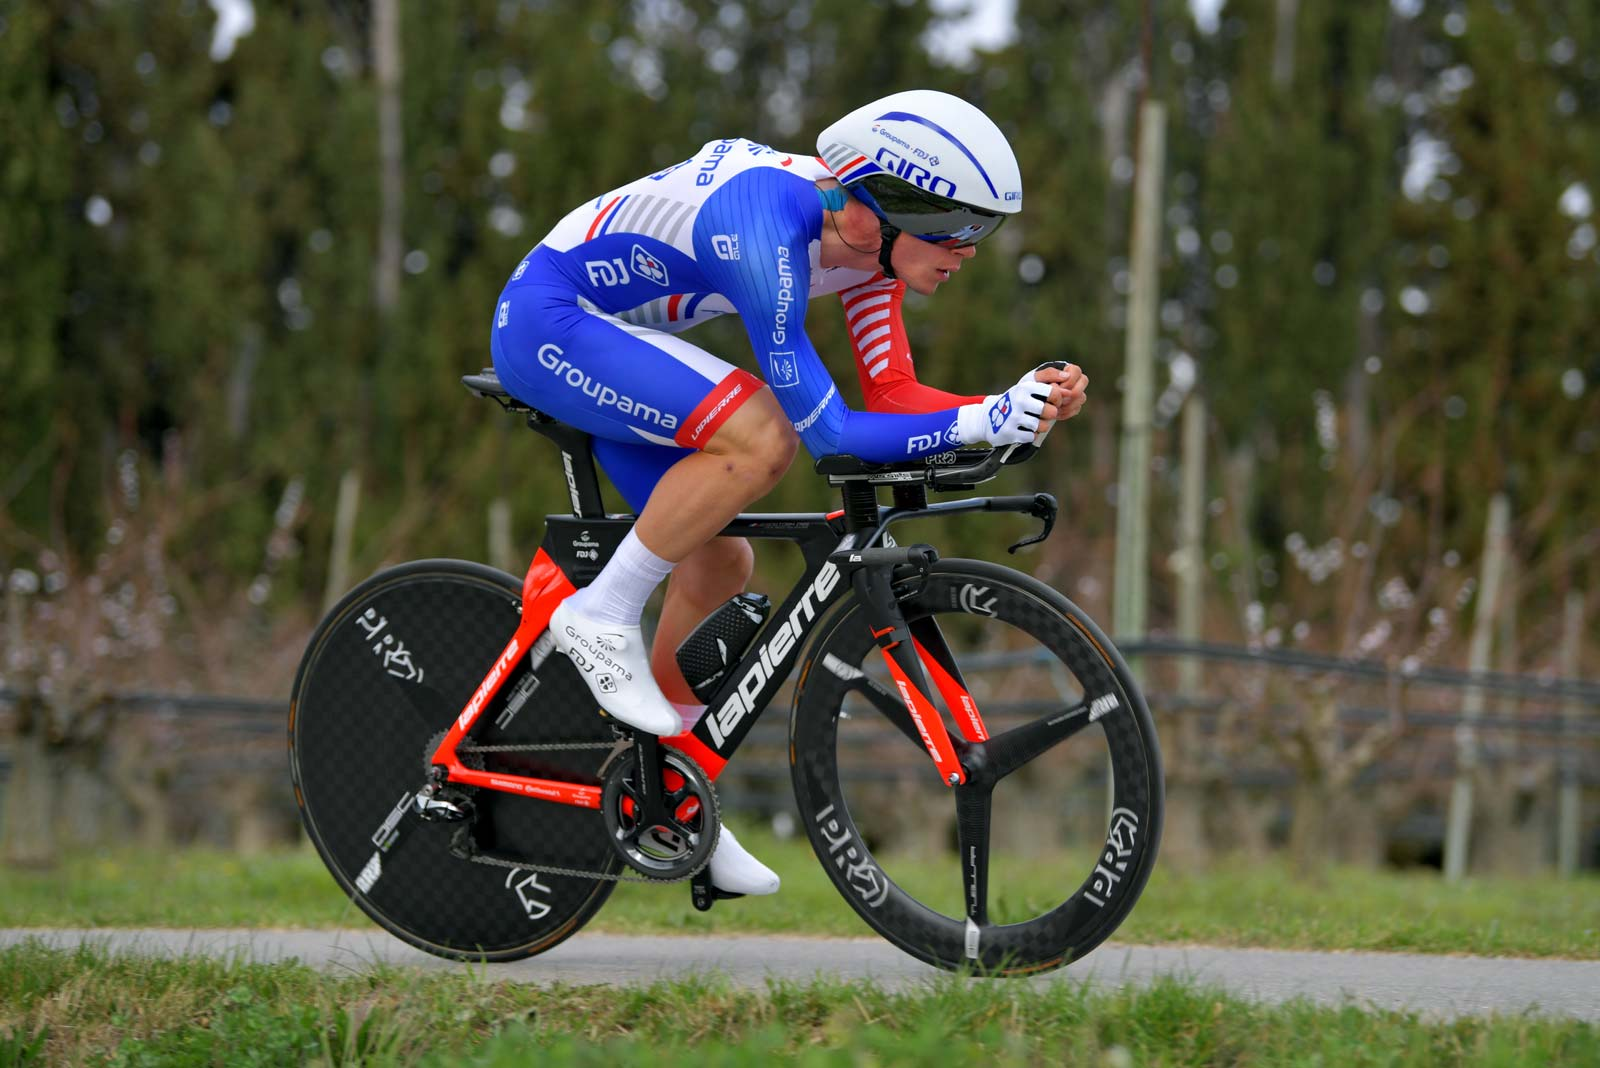 Valentin Madouas time trial